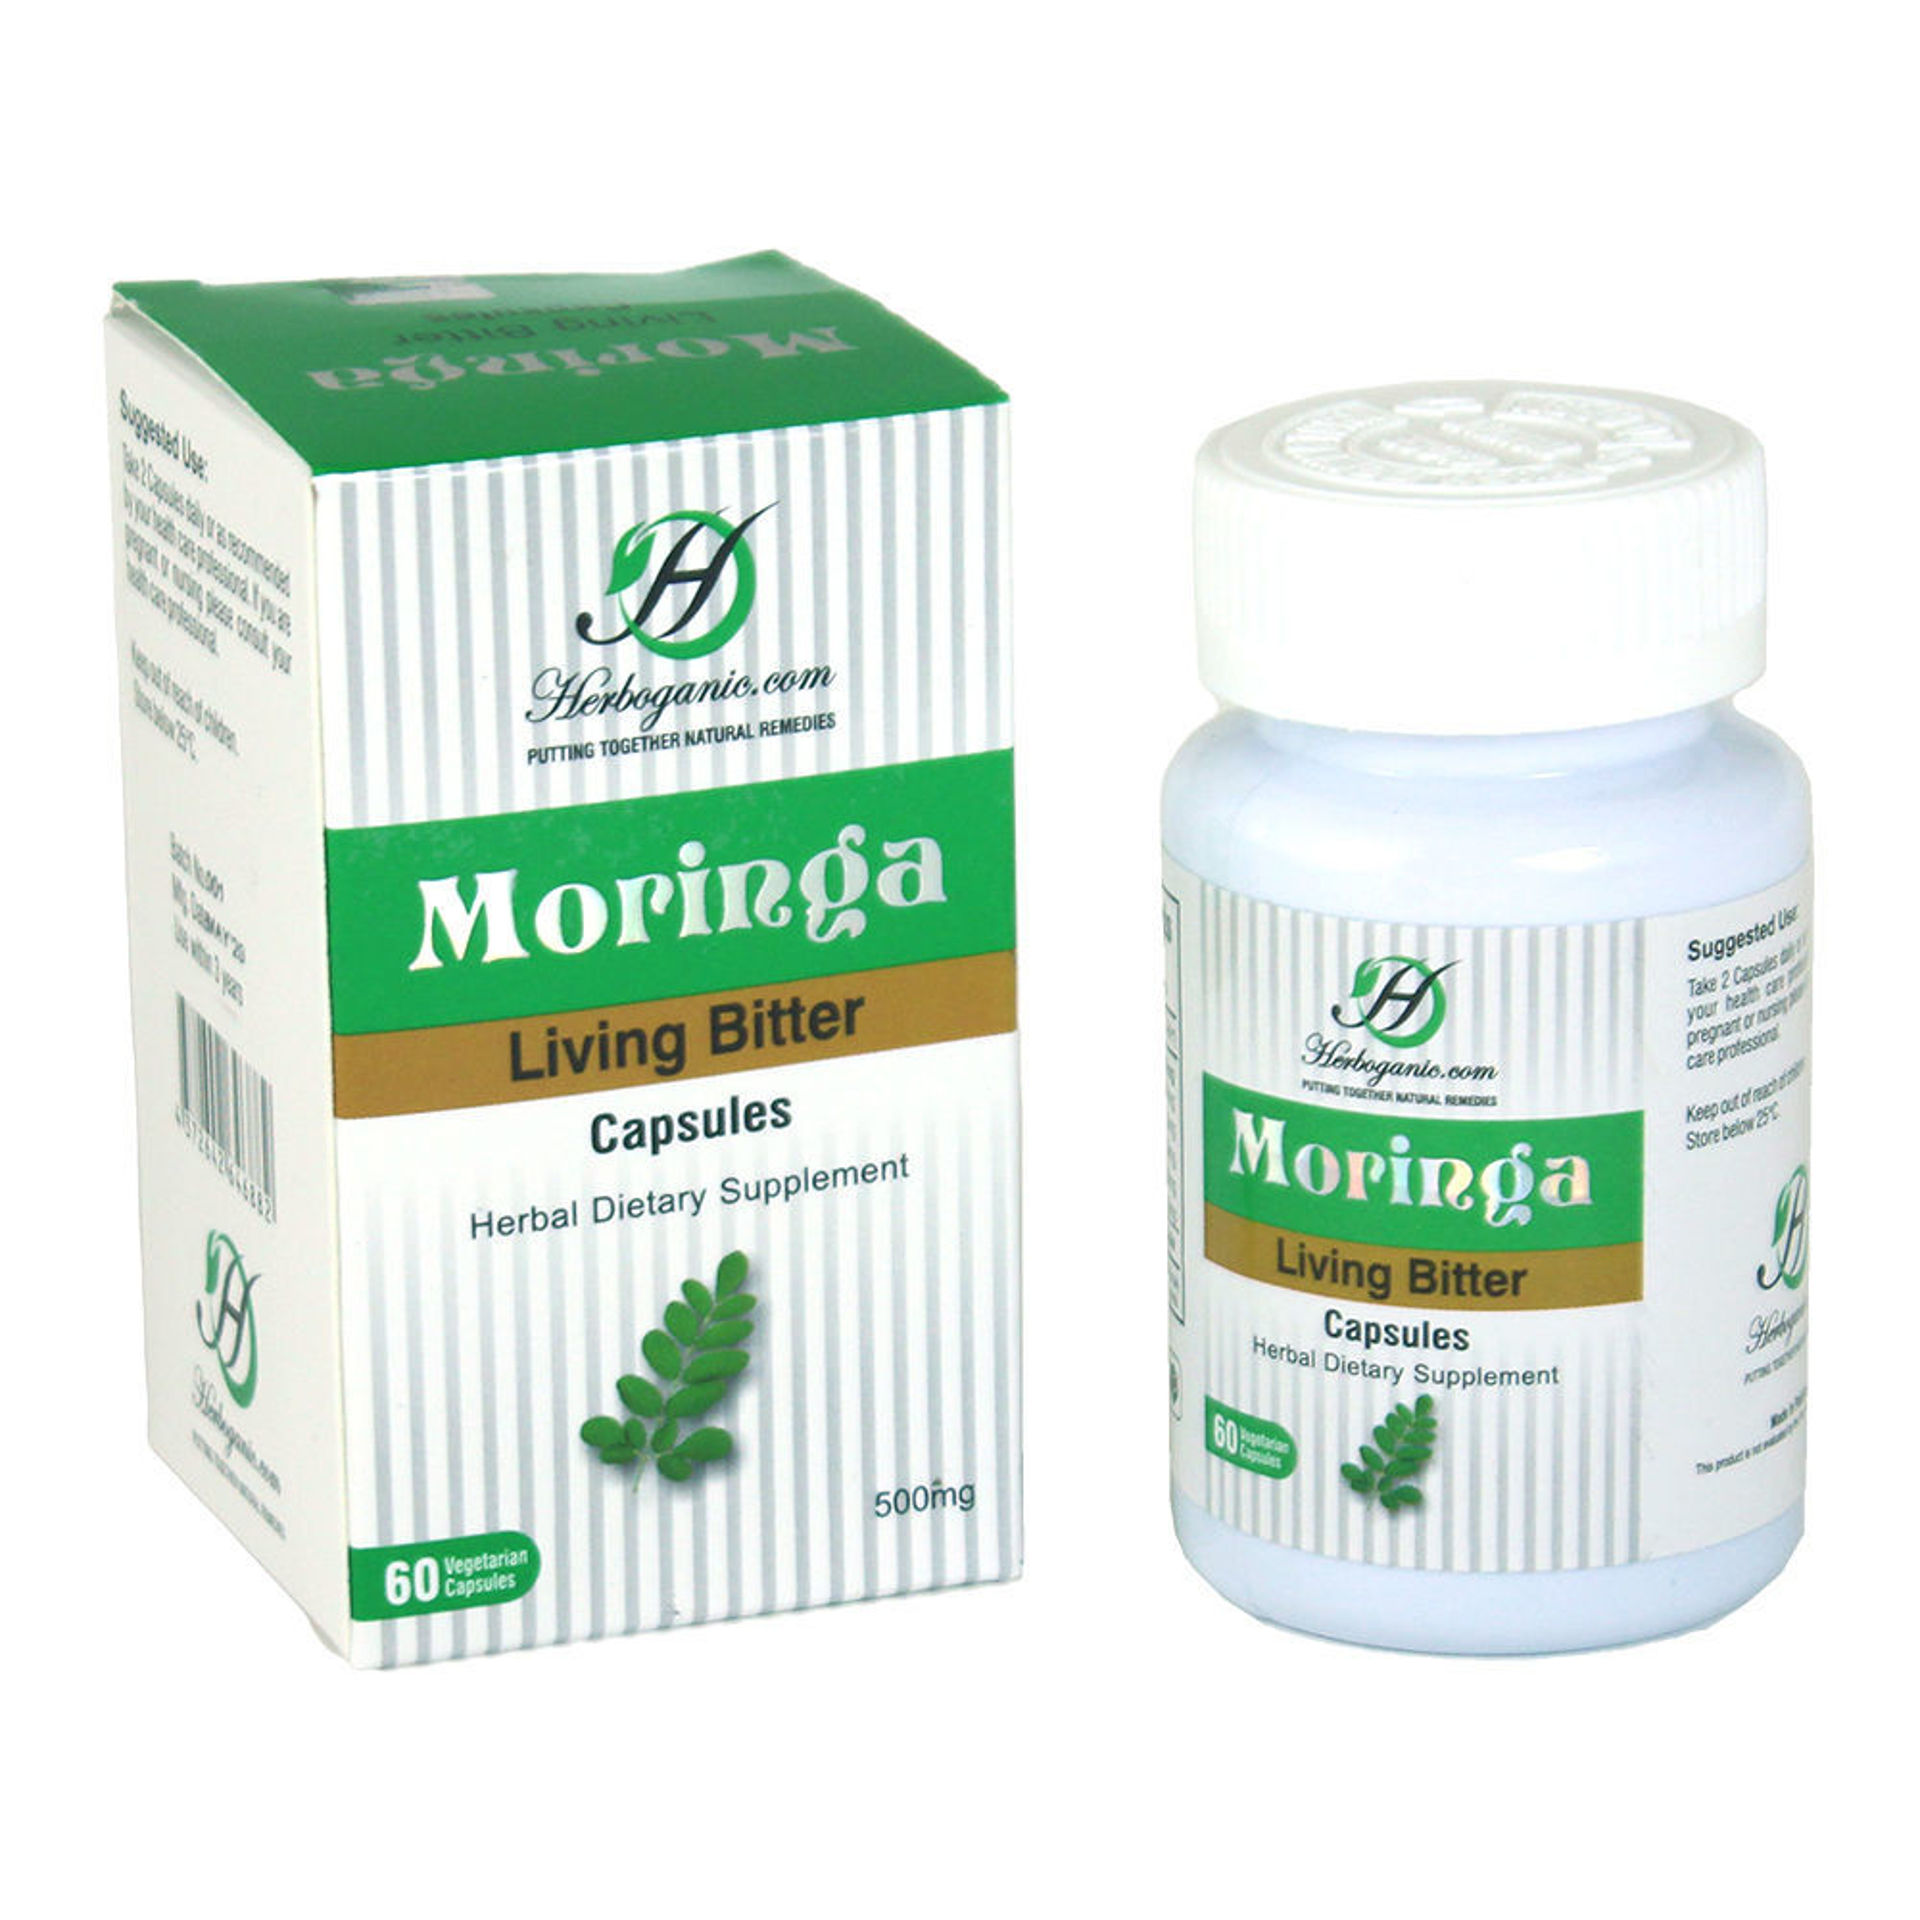 Picture of Moringa Living Bitters Capsules